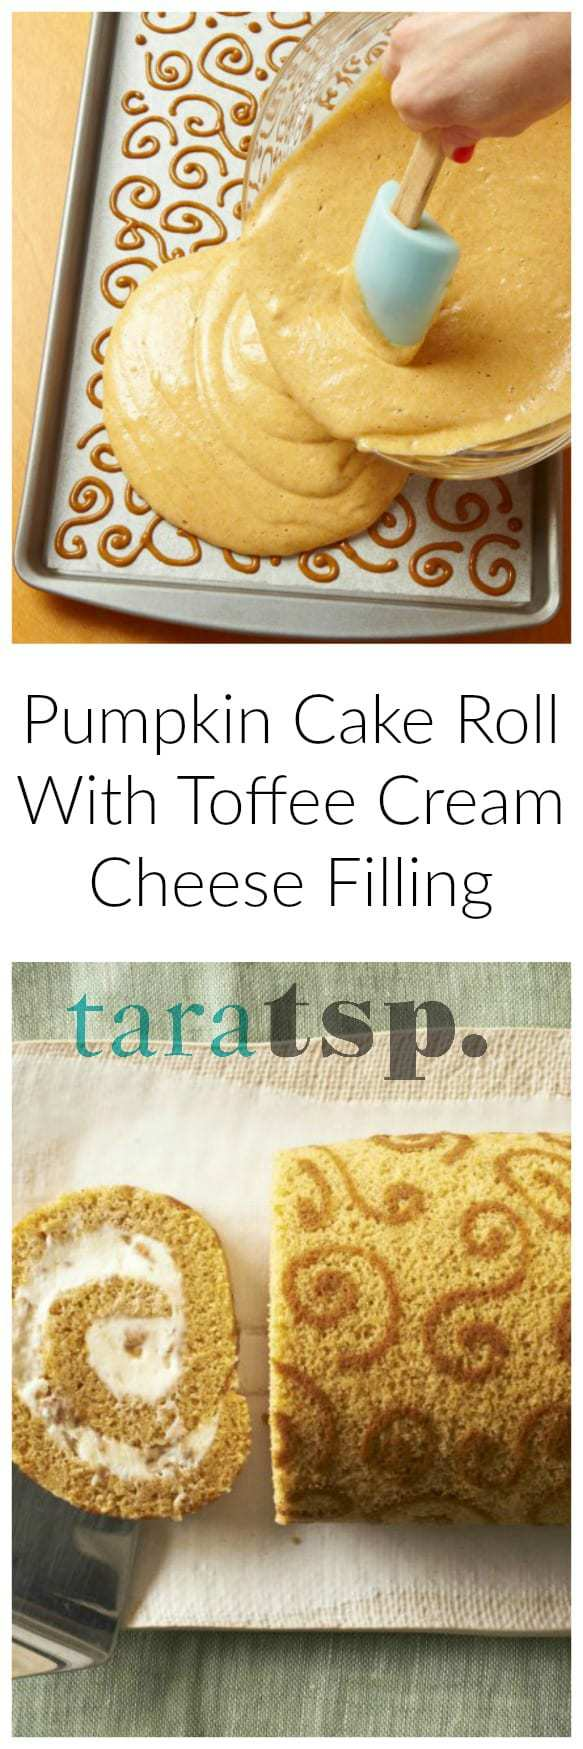 Pumpkin Cake Roll With Toffee Cream Cheese Filling ...